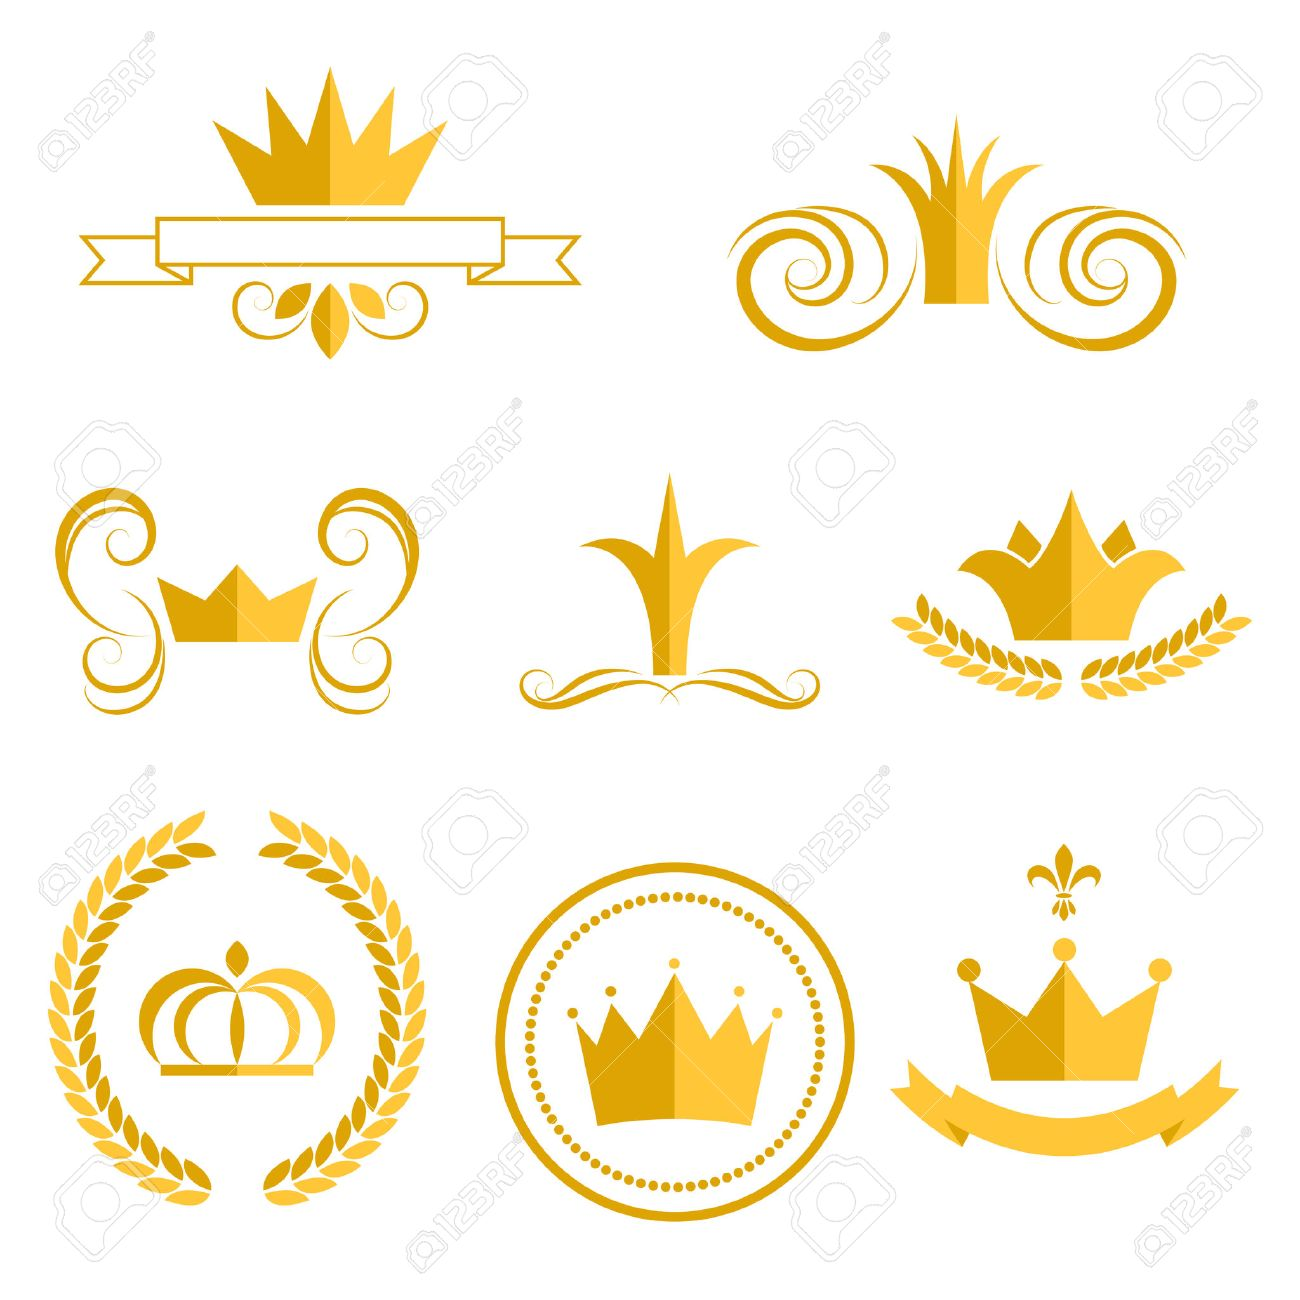 Gold crown logos and badges clip art vector set. King or queen...